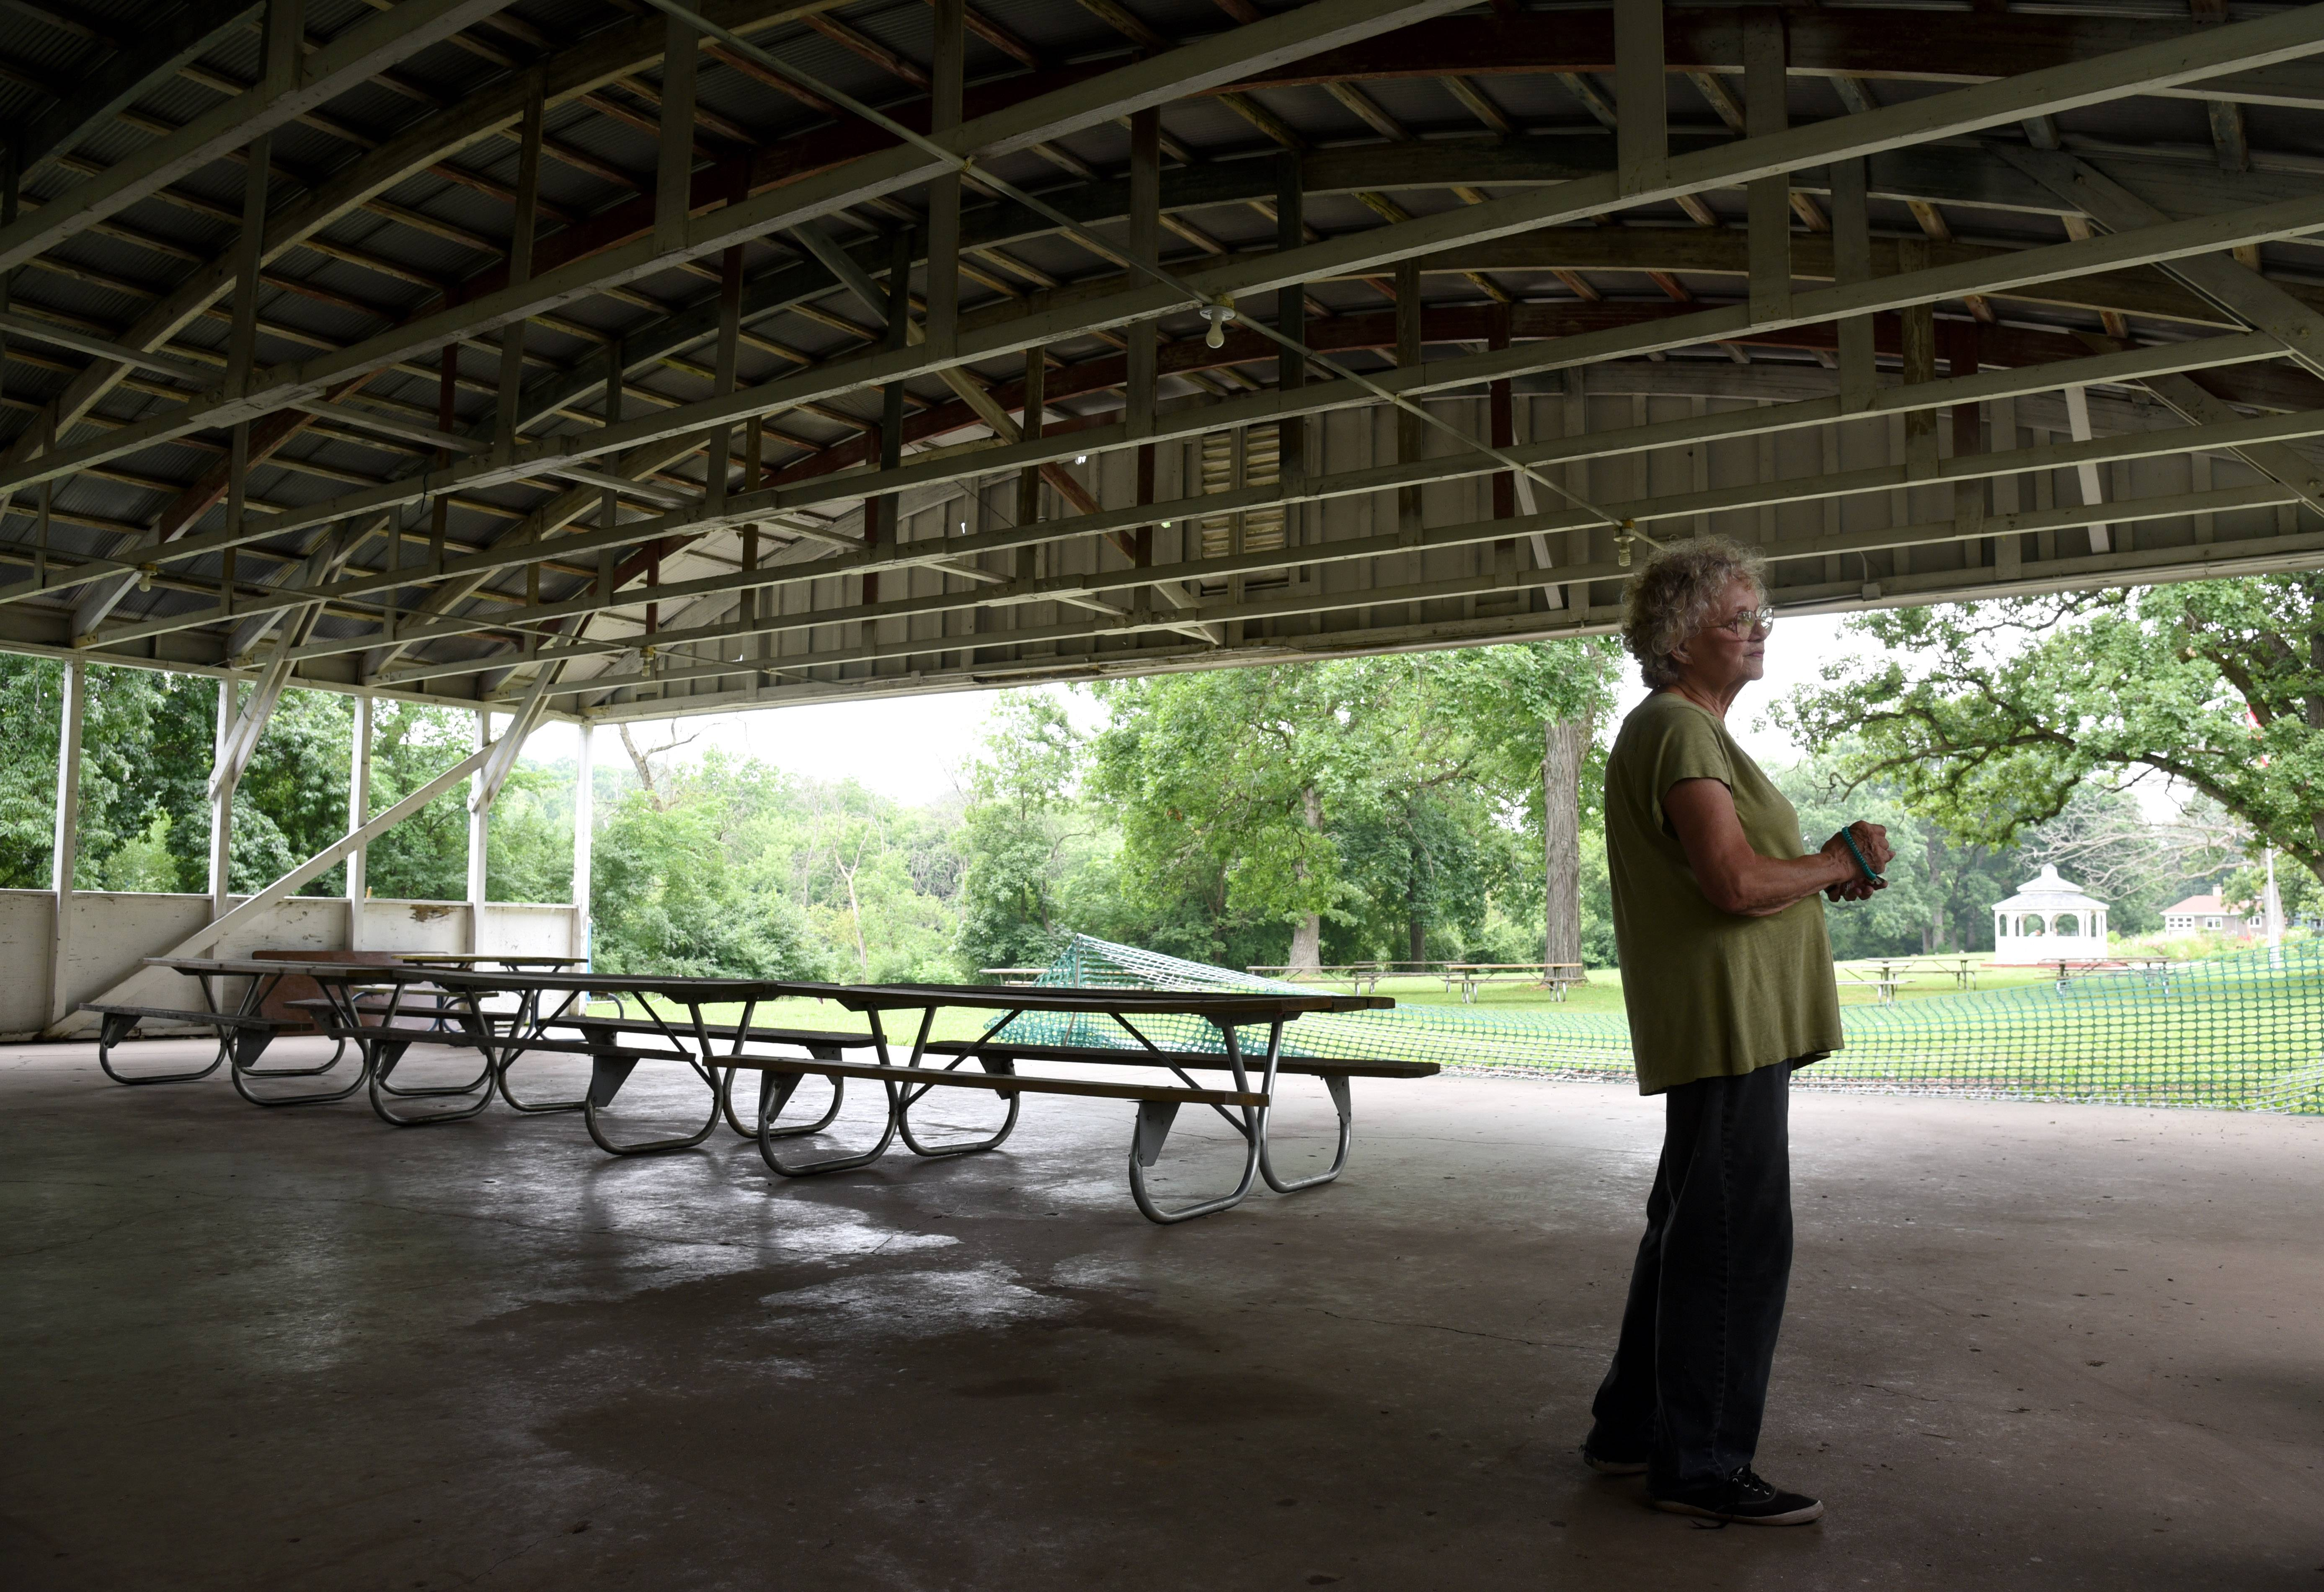 A leaky roof in the pavilion is among repairs needed at Vasa Park in South Elgin.